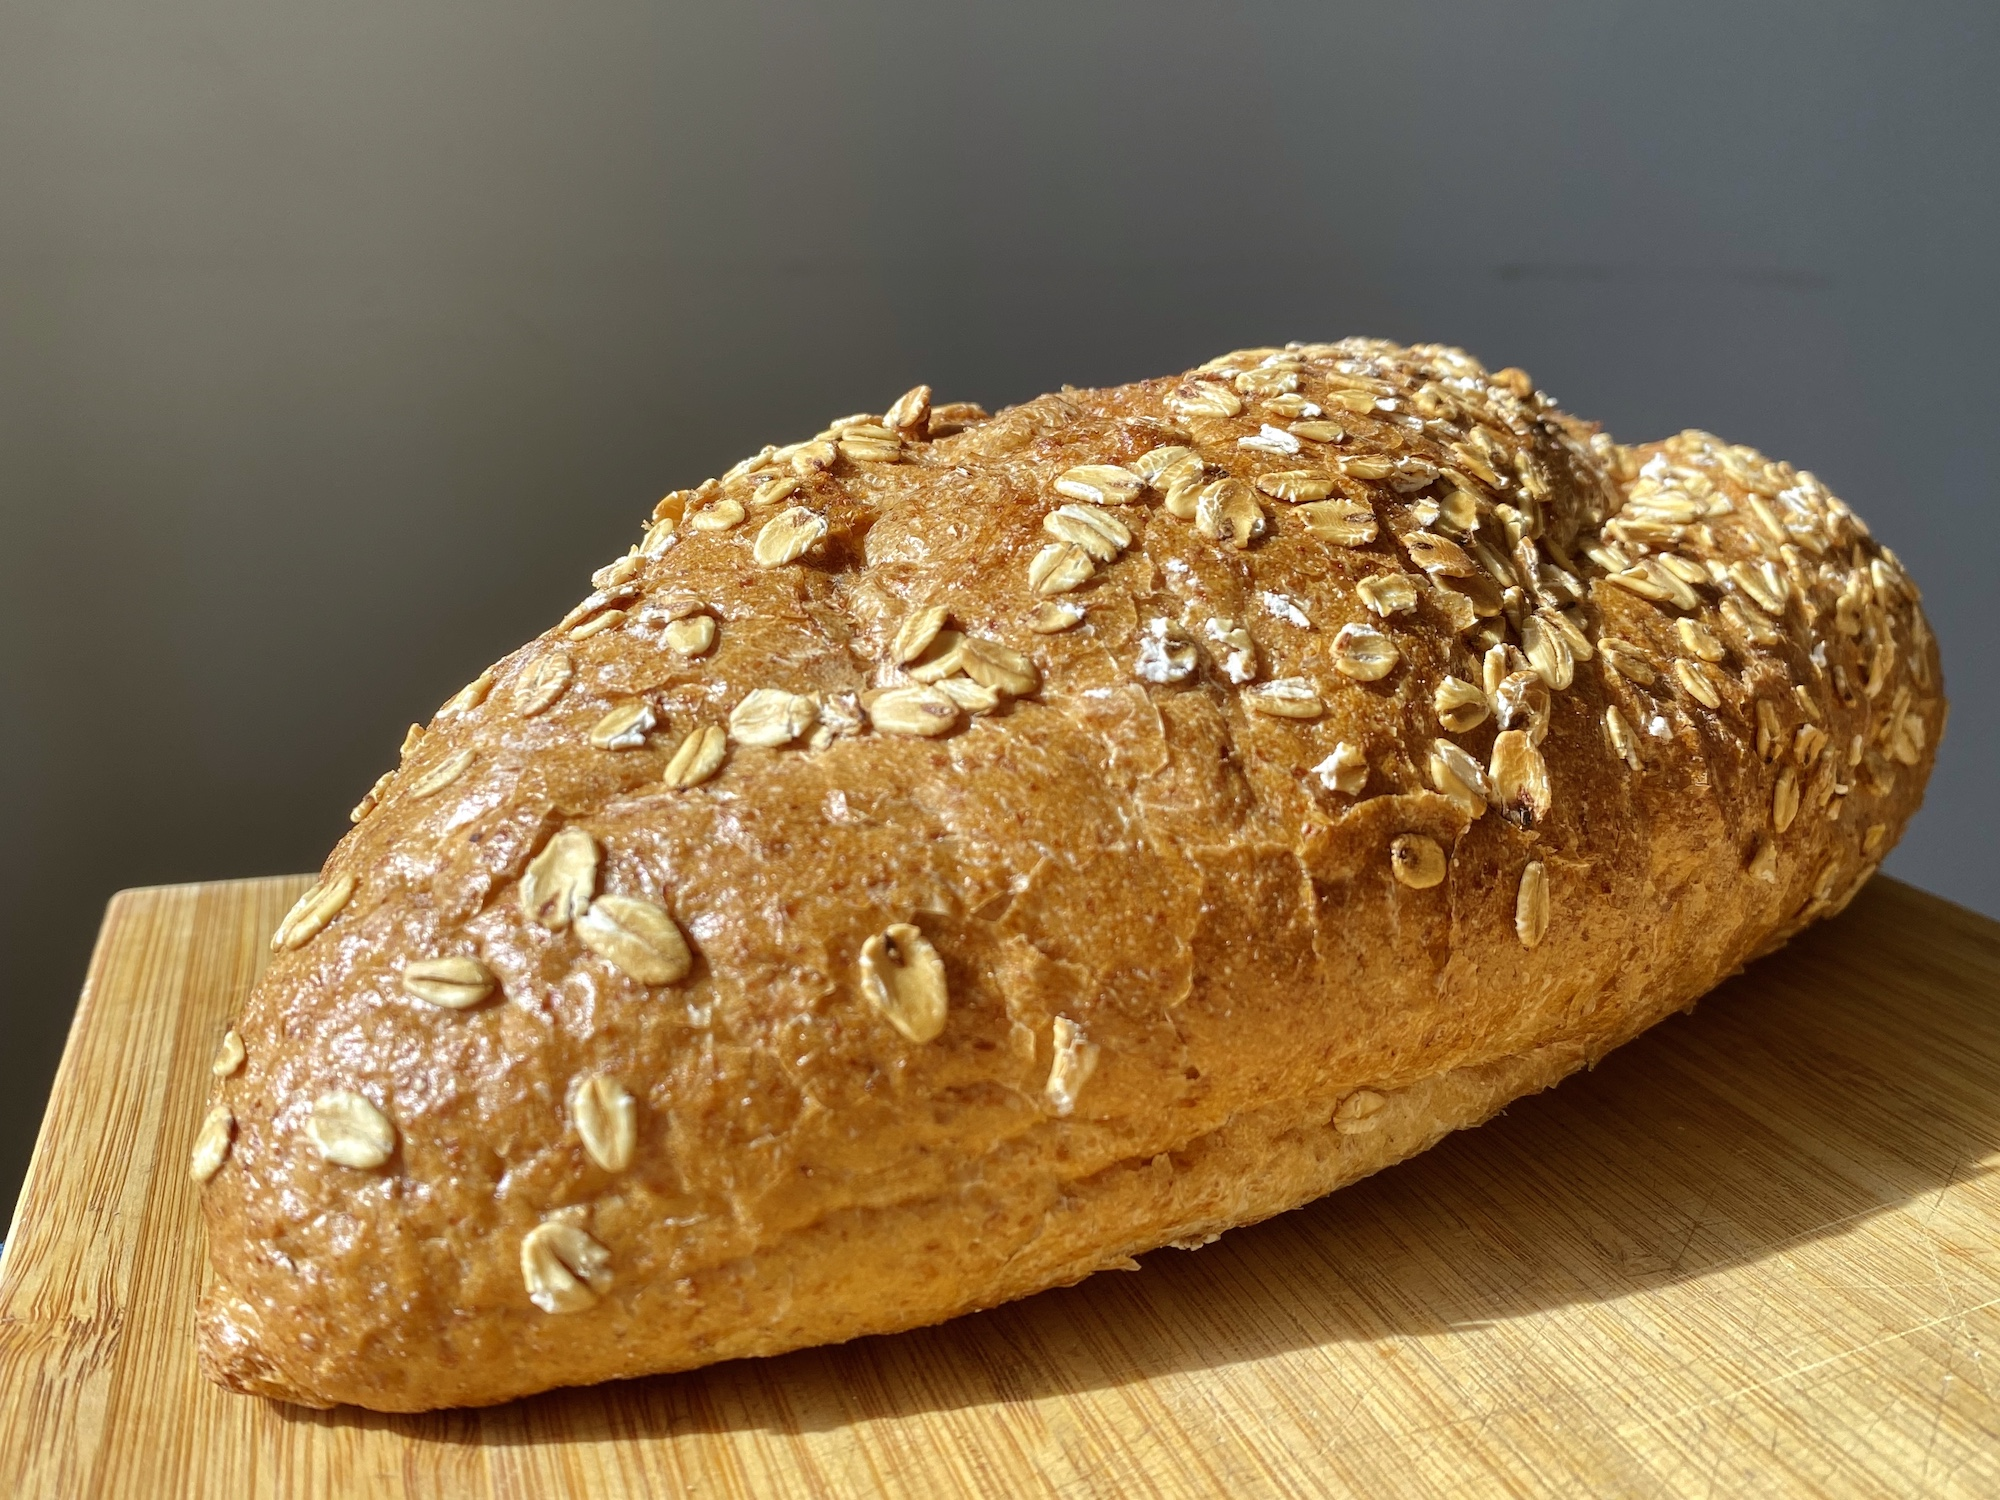 jam & butter one oasis whole wheat bread fresh bakery